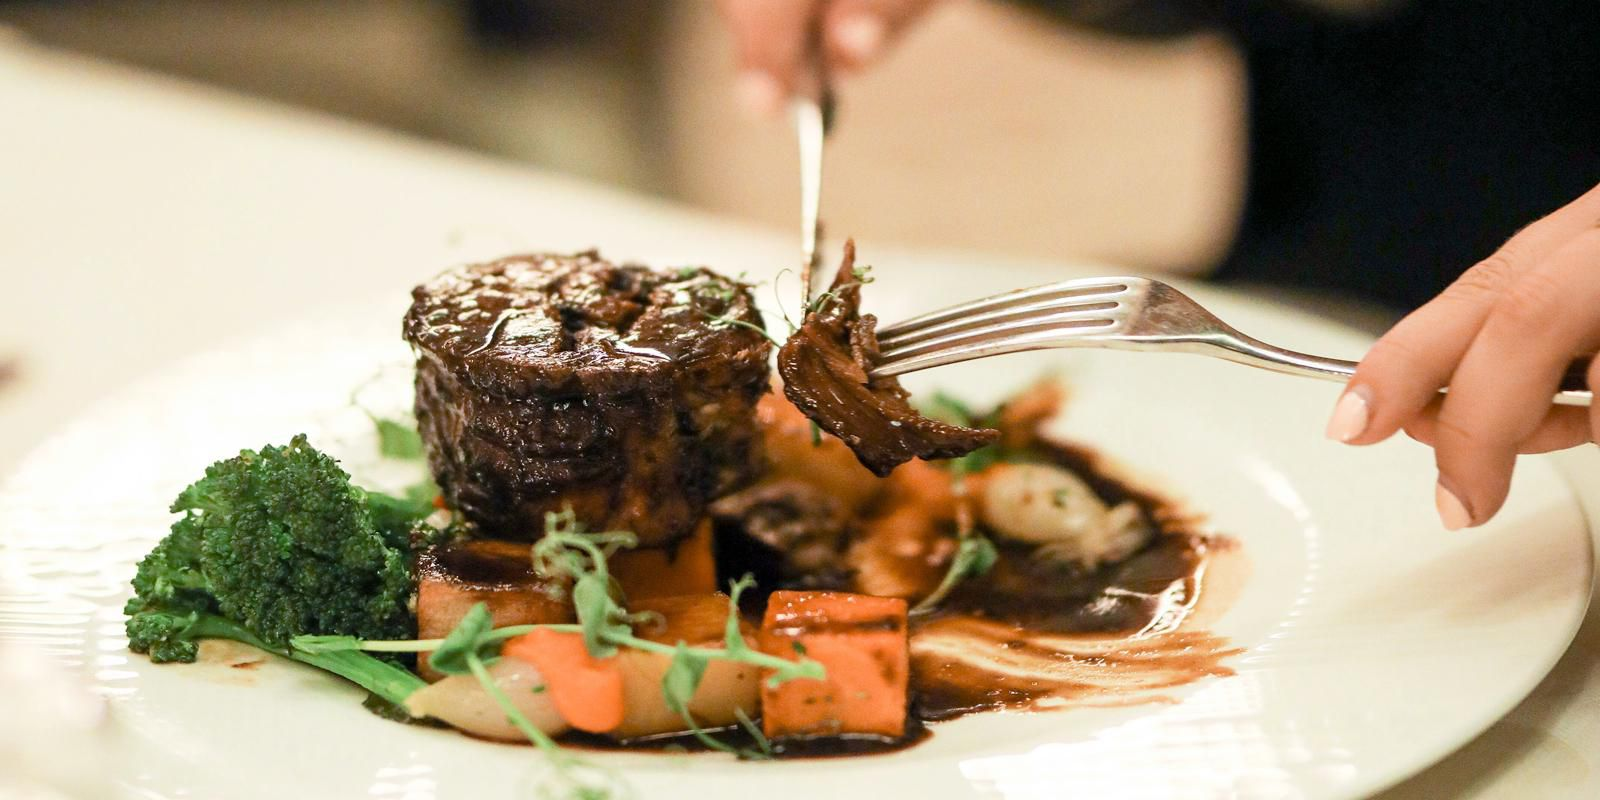 Try our delicious menu at The Cavendish Restaurant